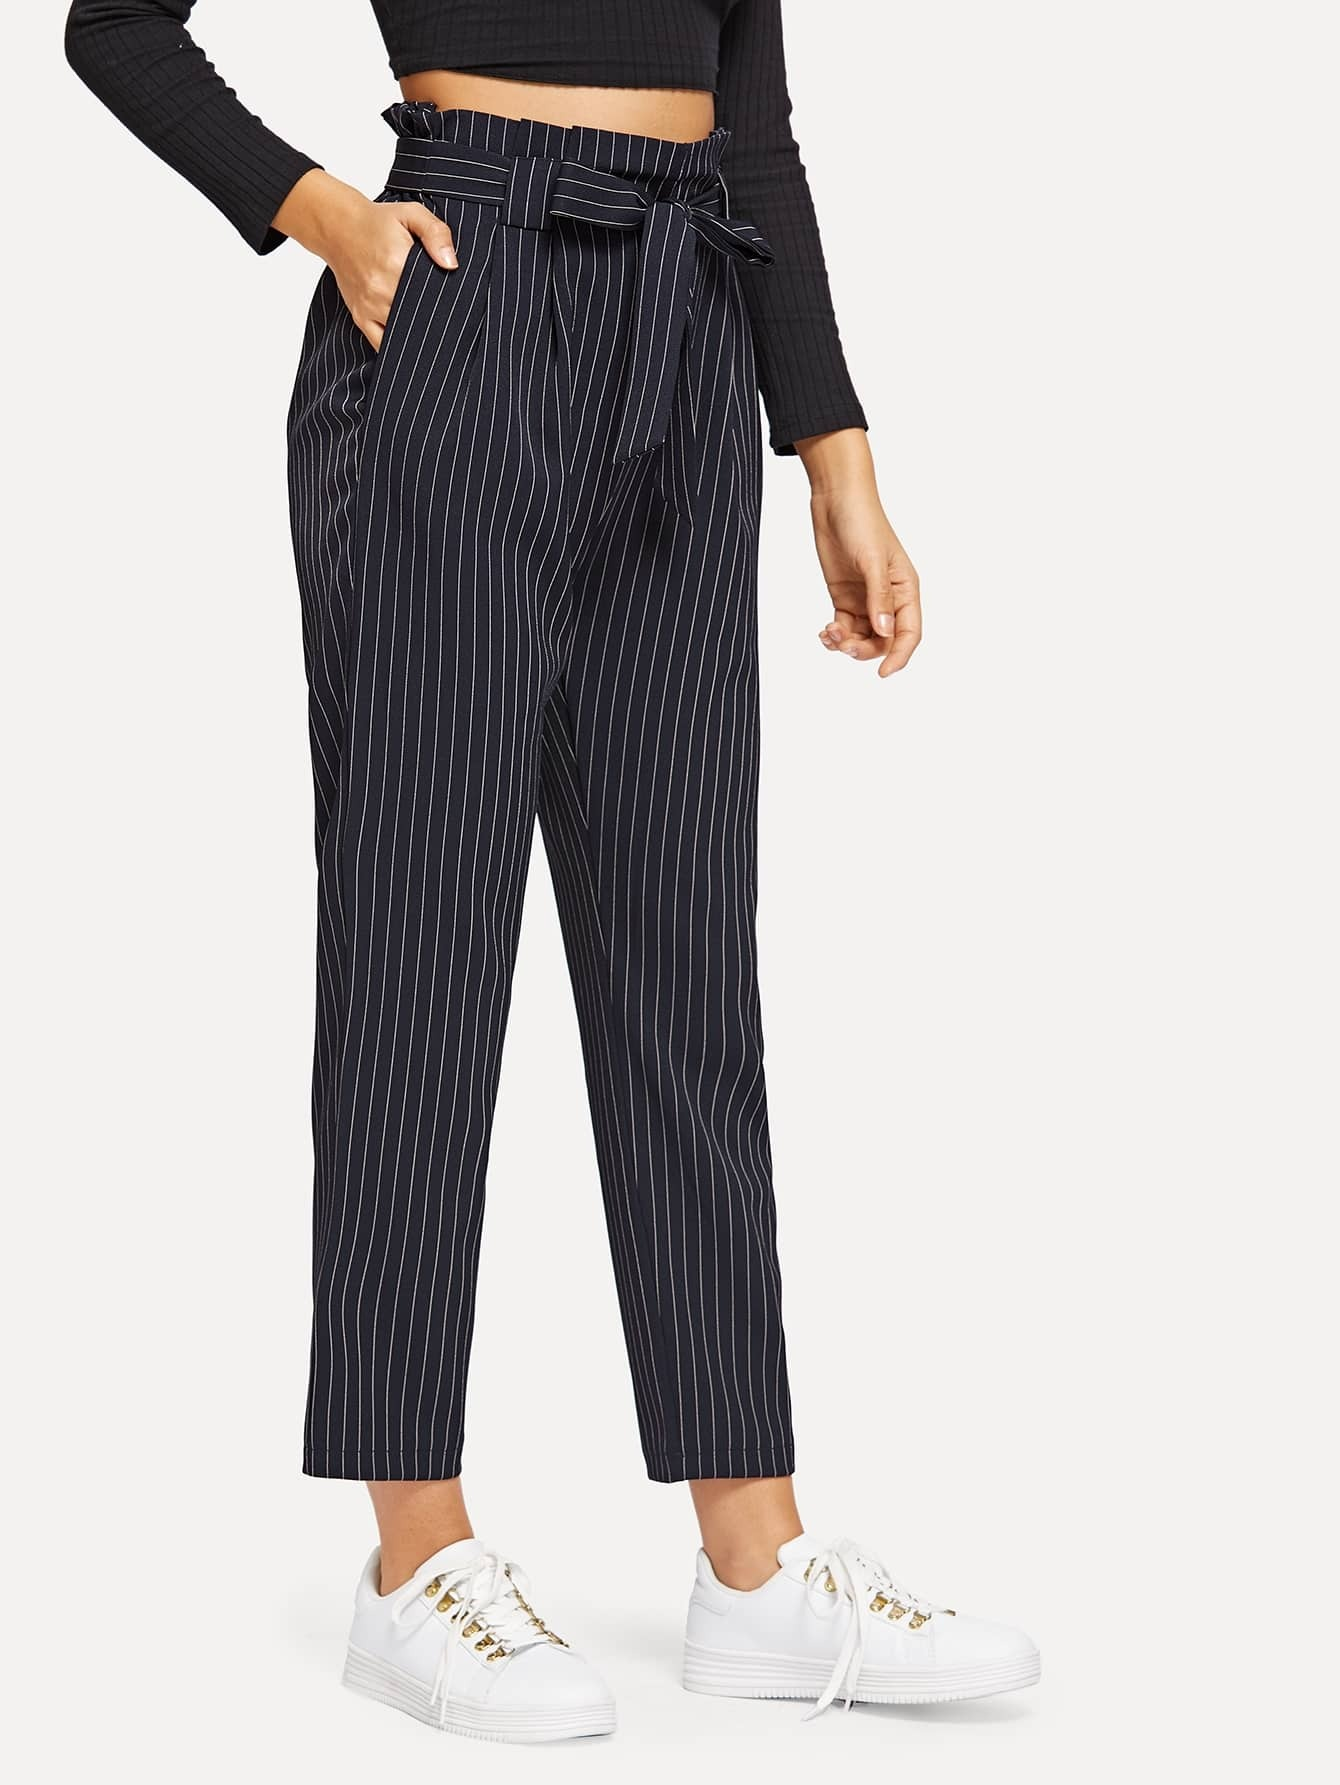 Striped Paperbag Waist Pants Striped Paperbag Waist Pants